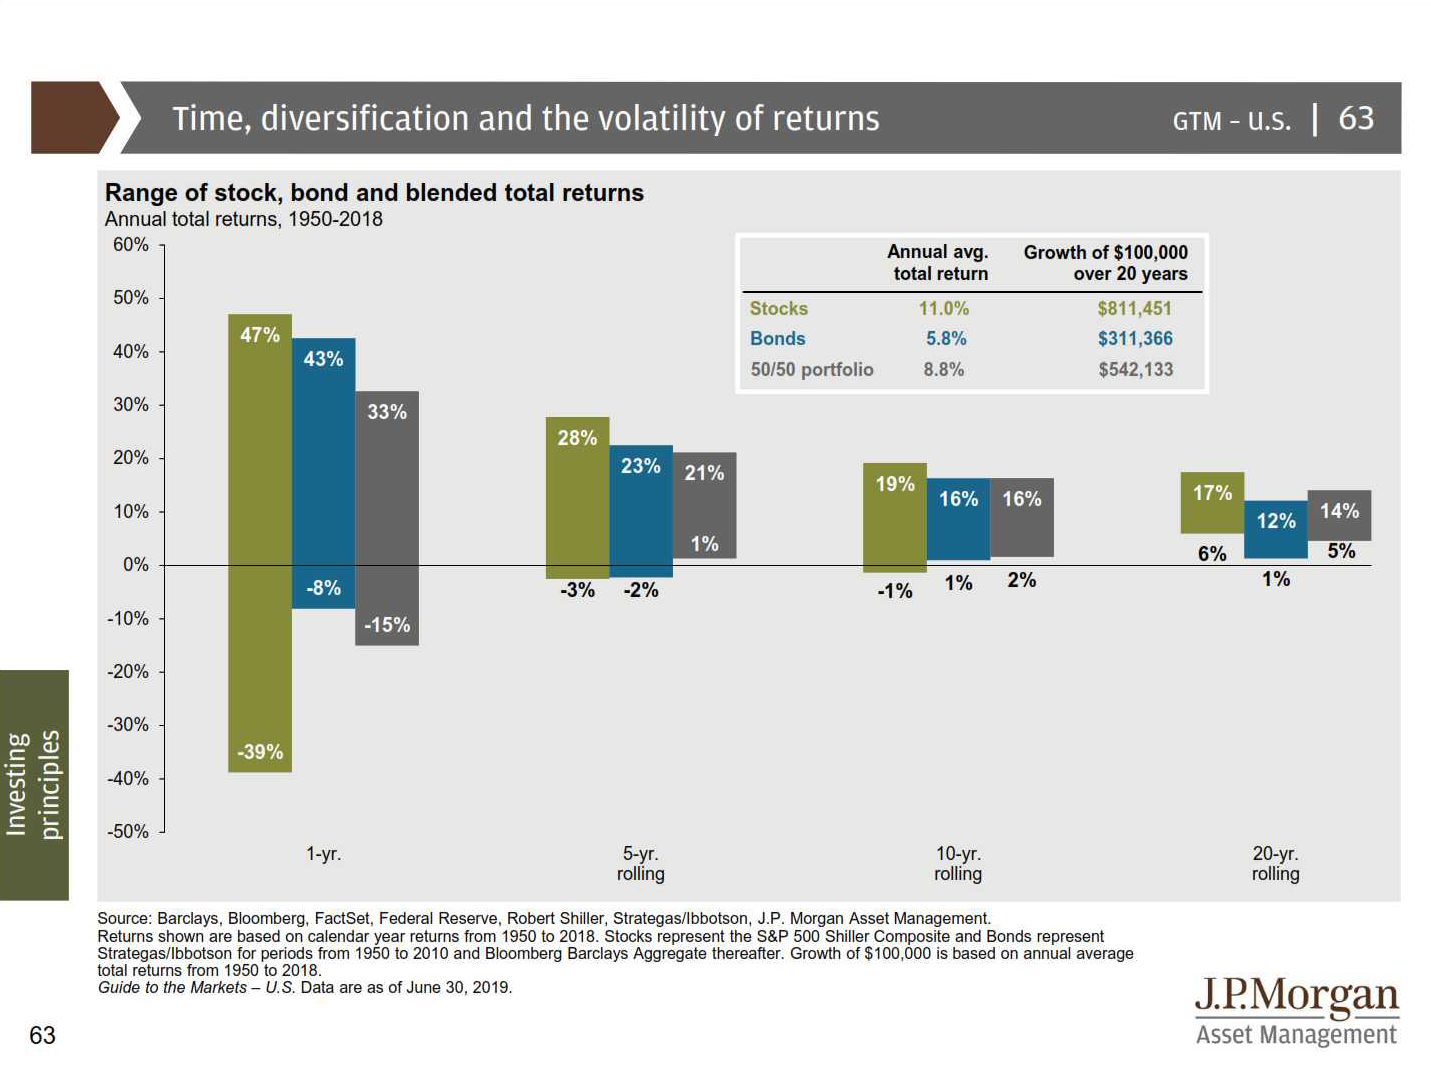 Risk Reduction Method #3 - Diversification Drives Risk-Adjusted Results Thumbnail